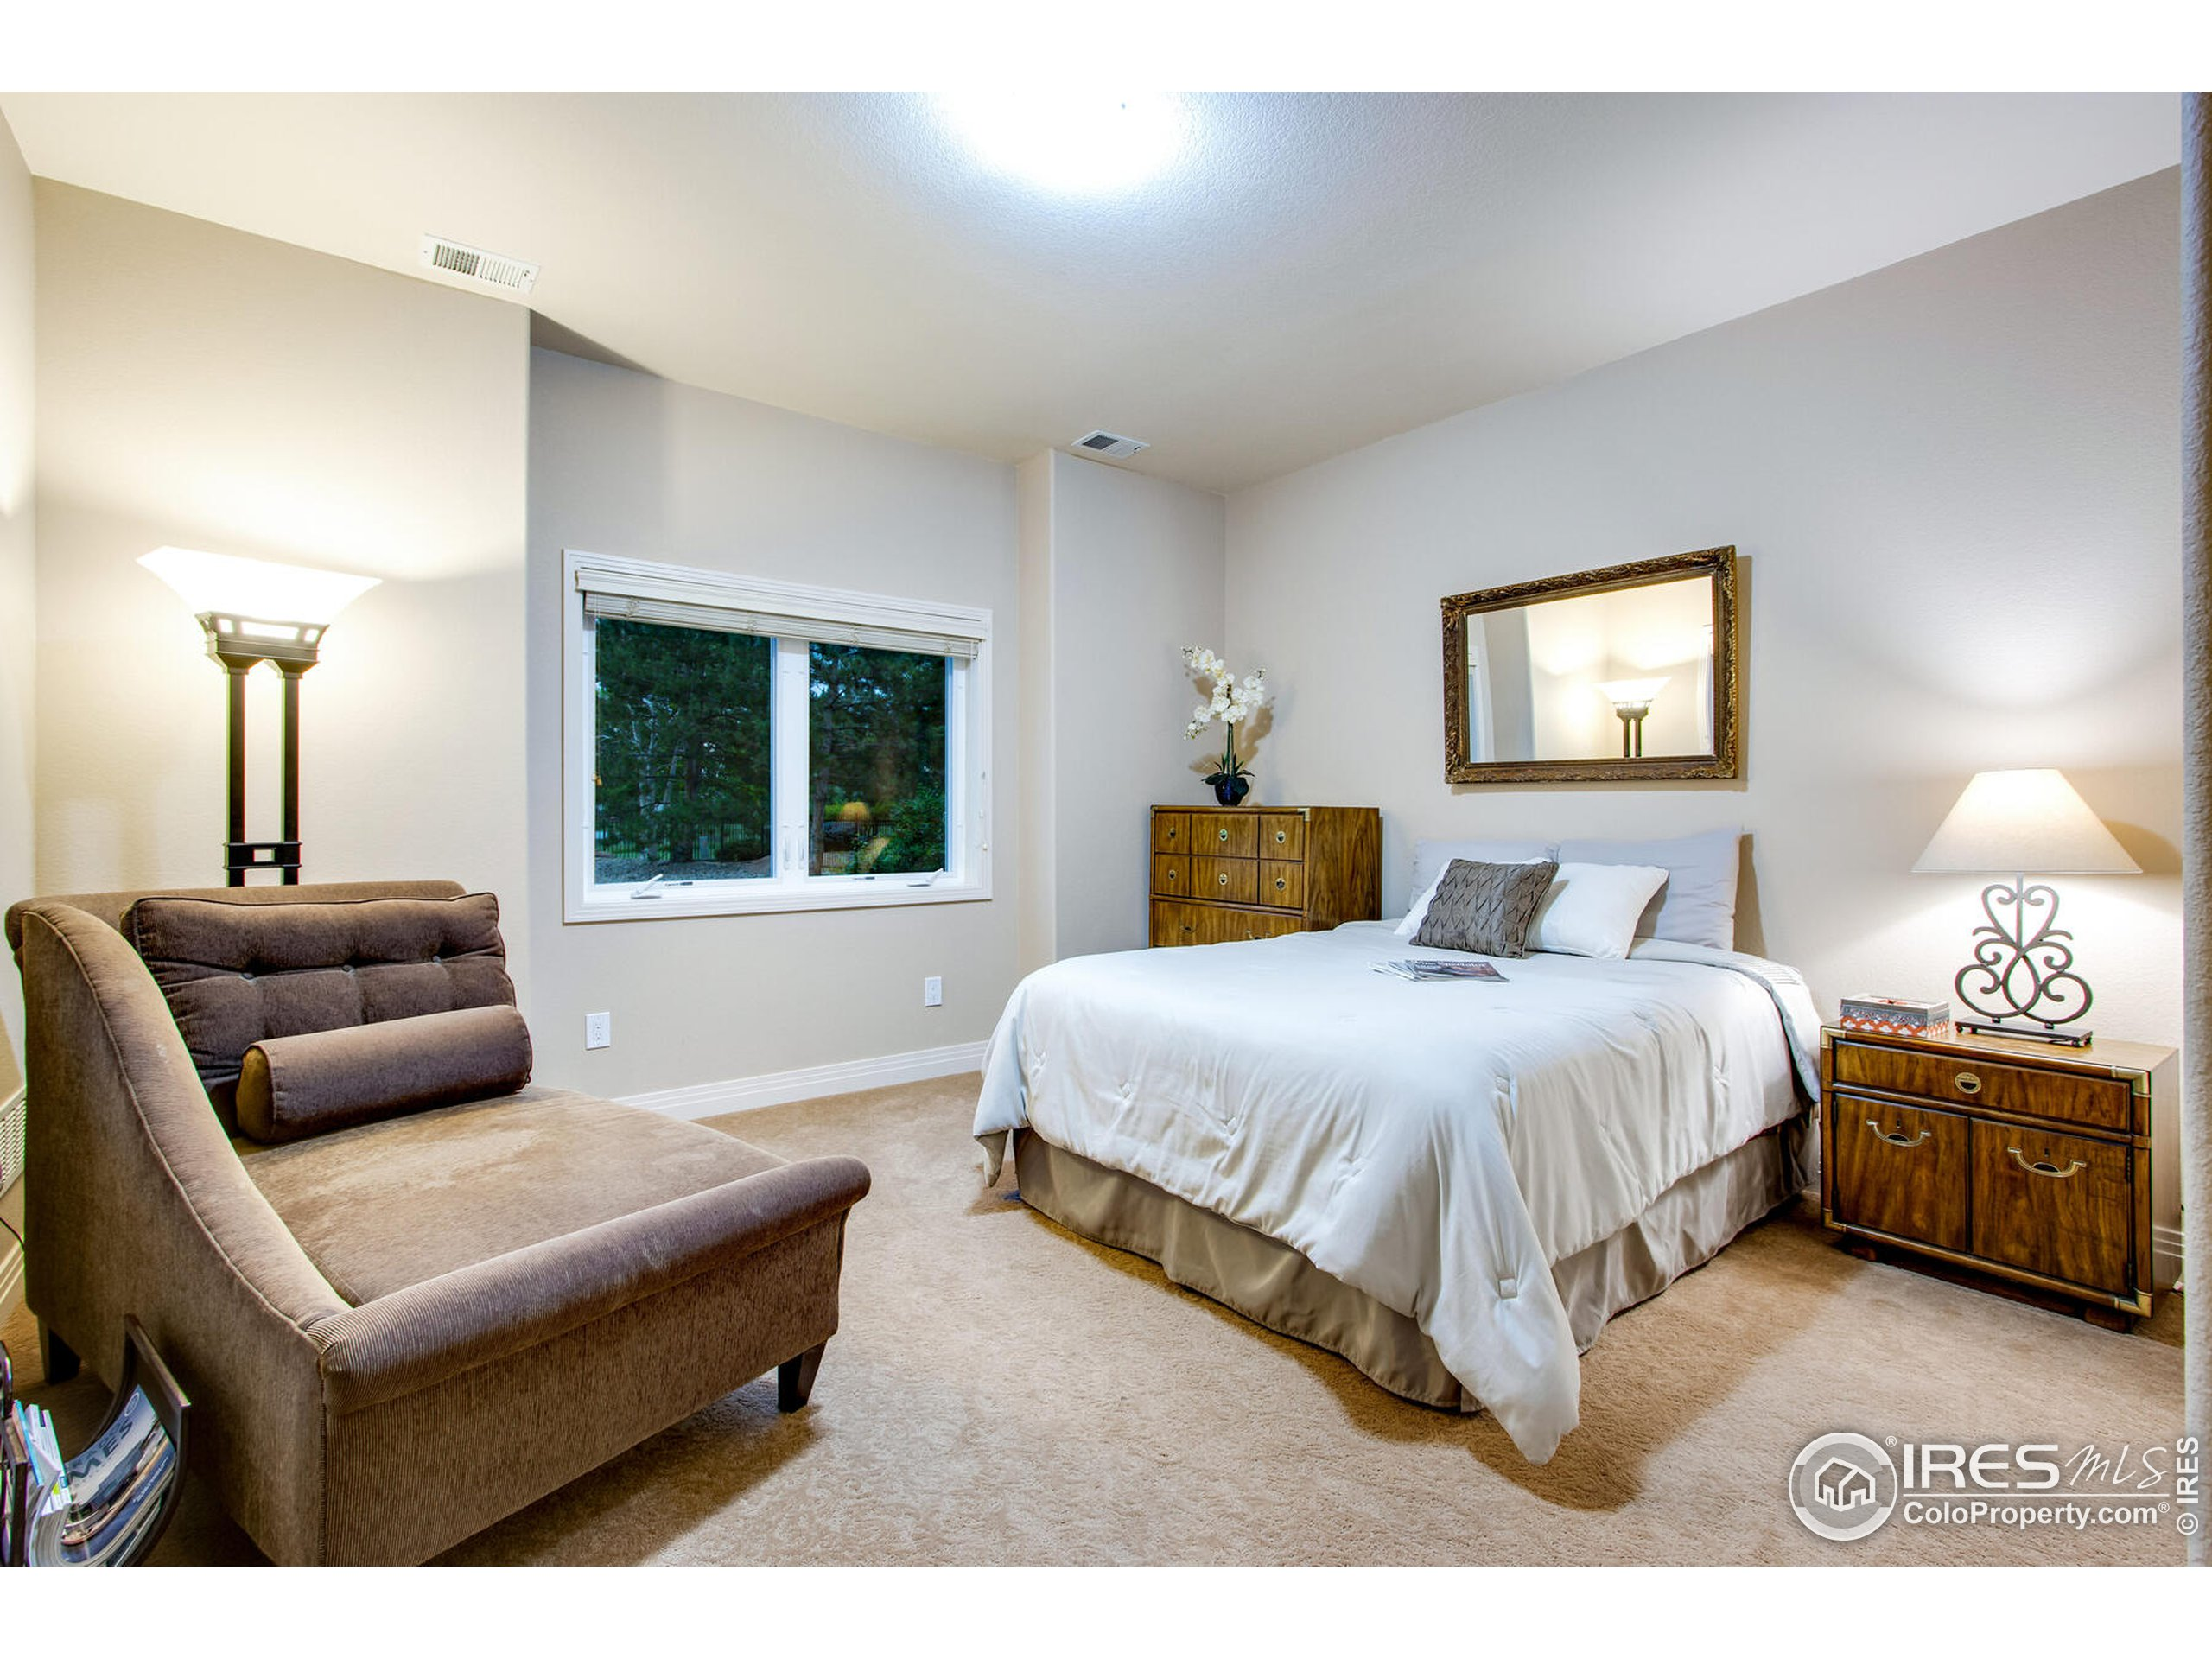 Lower Level Bedroom #3 - Great for Guest or Enlaws with spectacular views